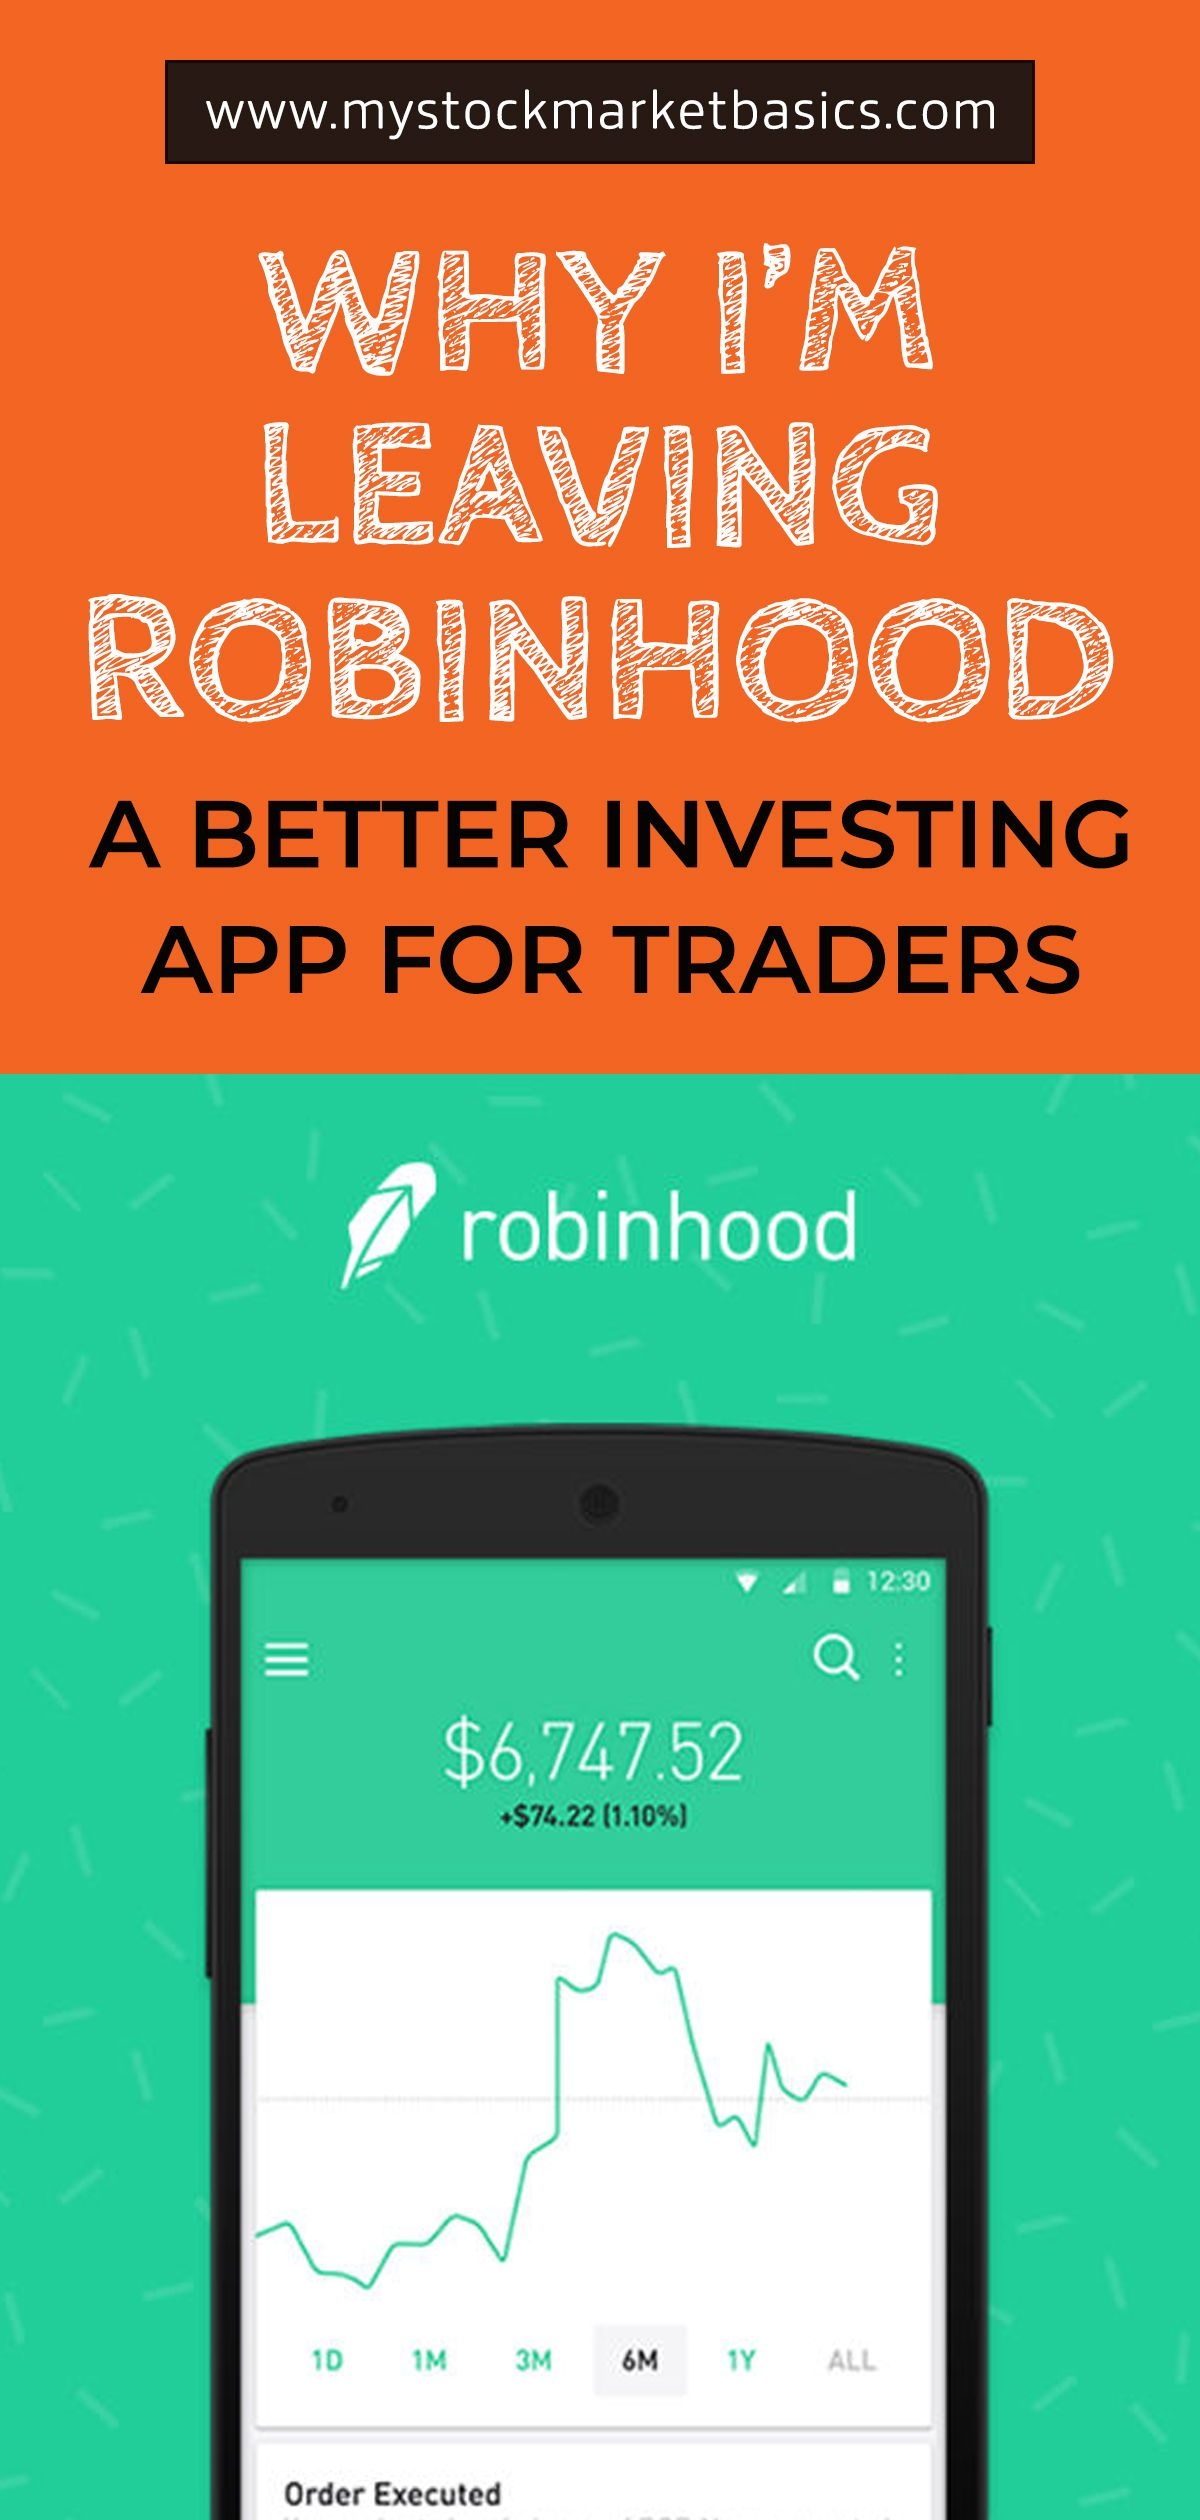 Investment App Comparison [Webull vs Robinhood vs M1